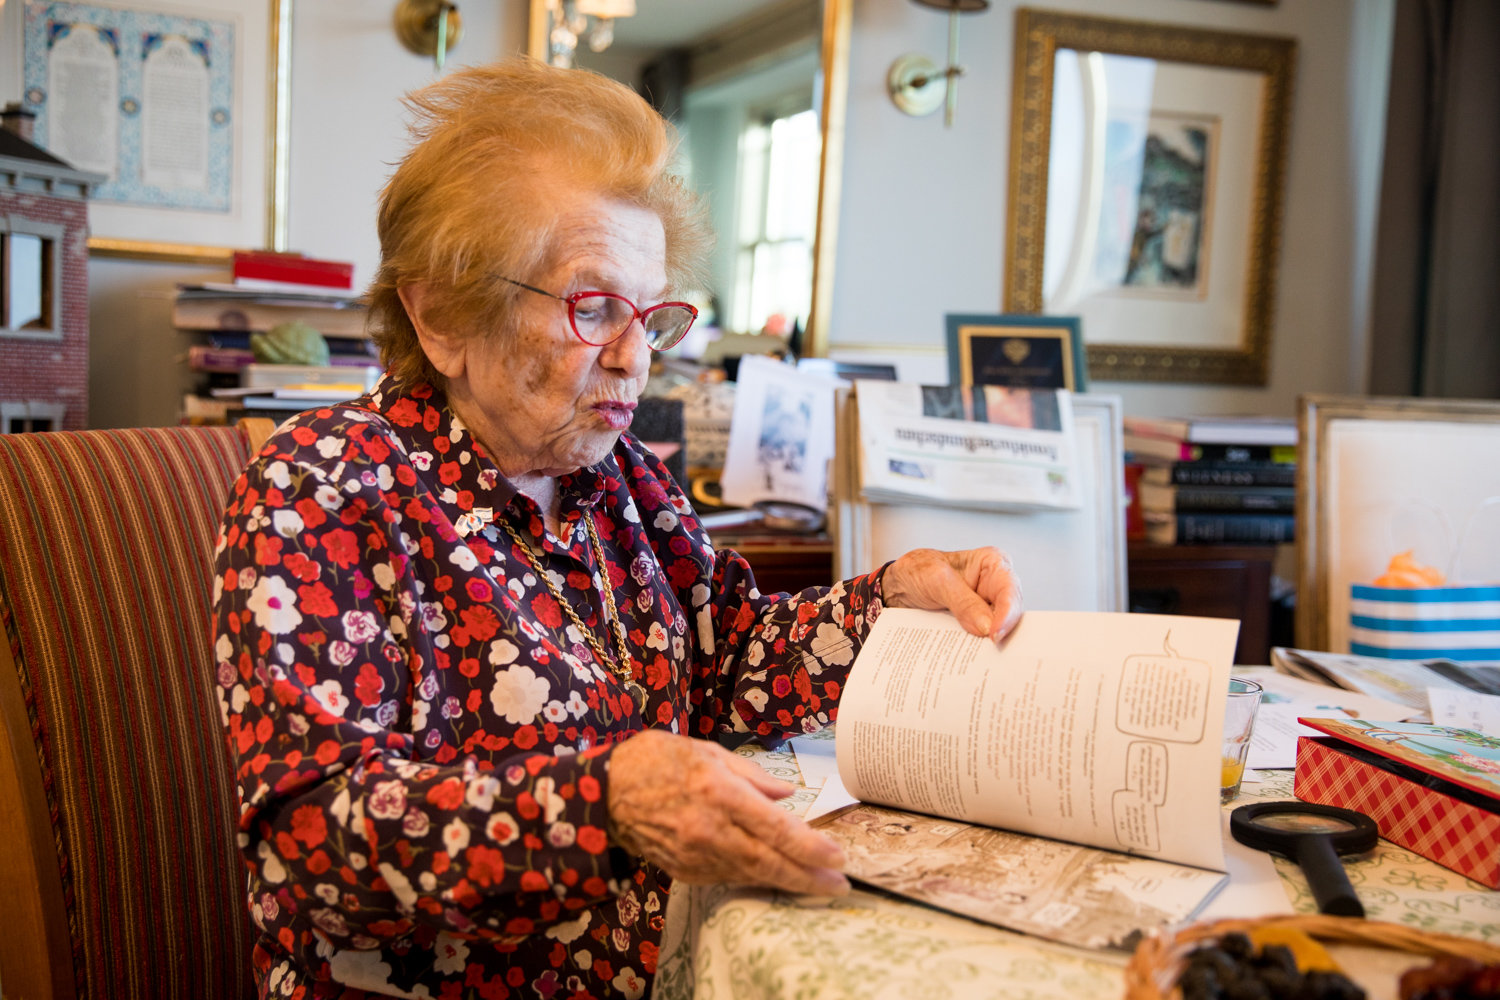 Dr. Ruth K. Westheimer flips through a graphic novel about her life's story, 'Roller Coaster Grandma: The Amazing Story of Dr. Ruth.'